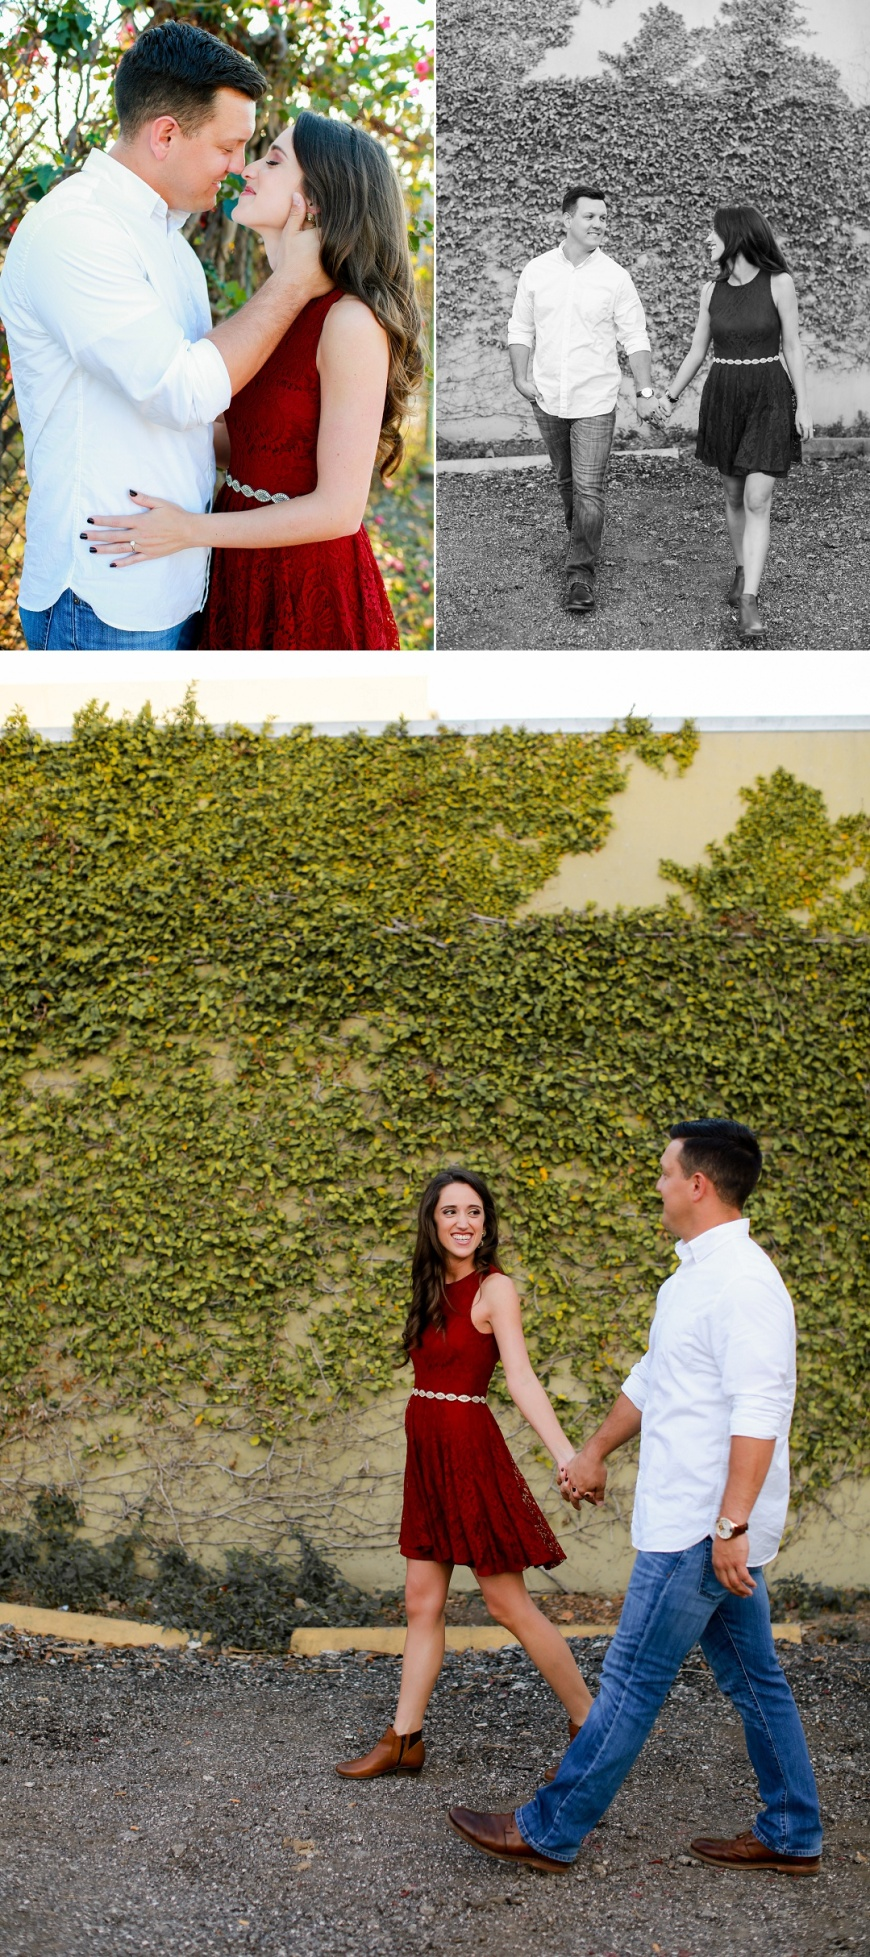 Ybor-City-Tampa-Engagement-Photographer_1027.jpg